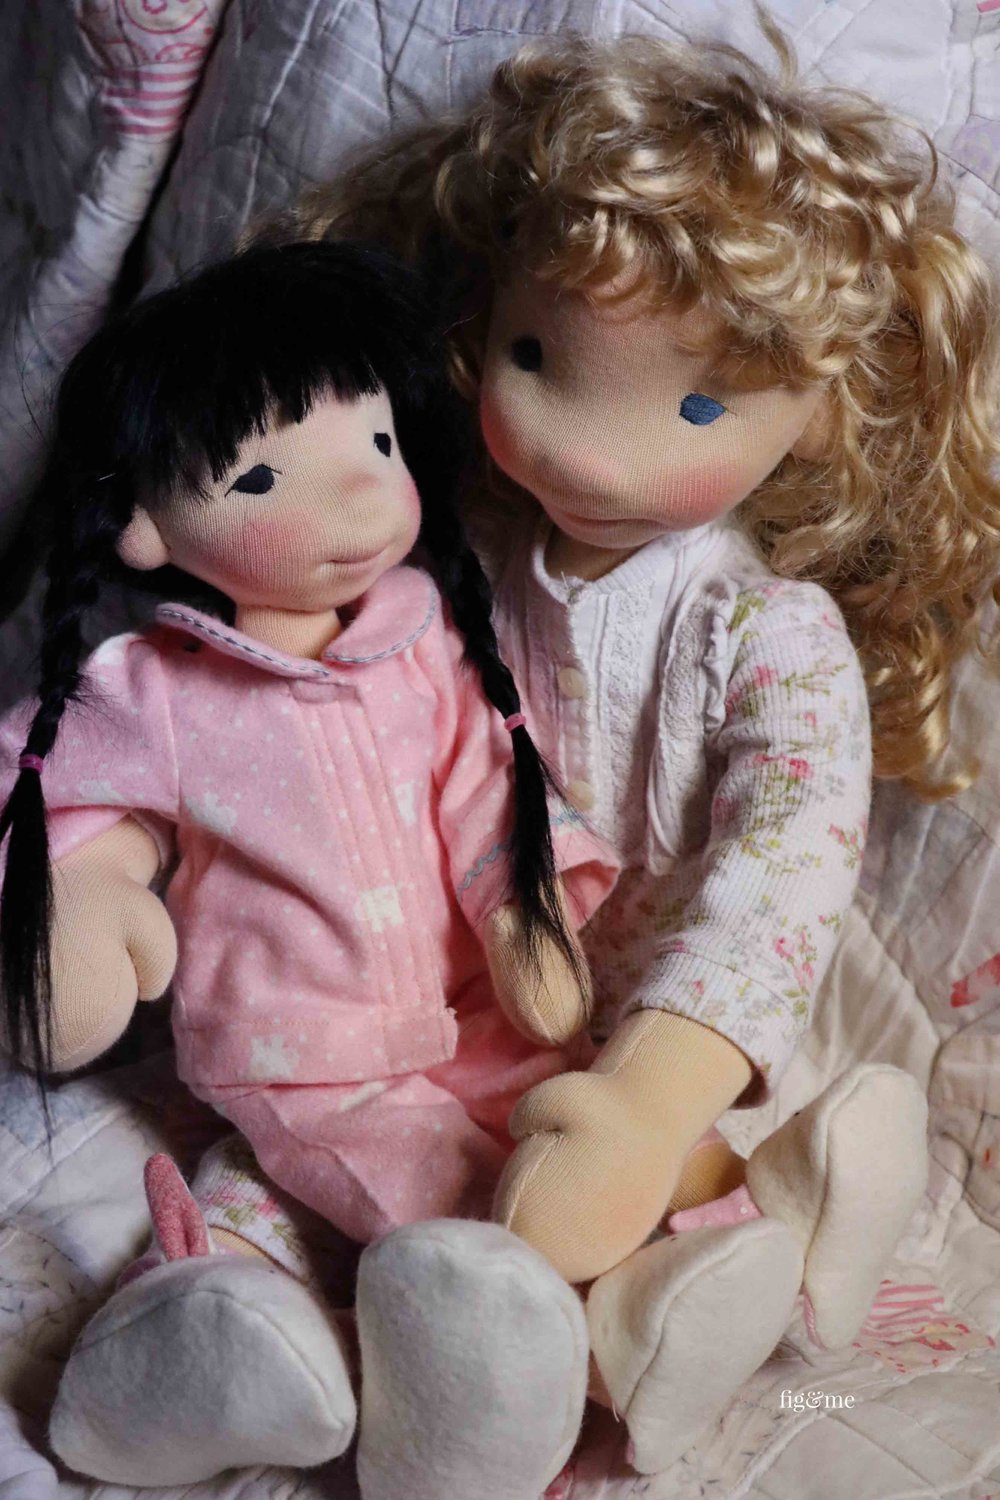 The dolls, I mean, the girls playing. By Fig and Me.